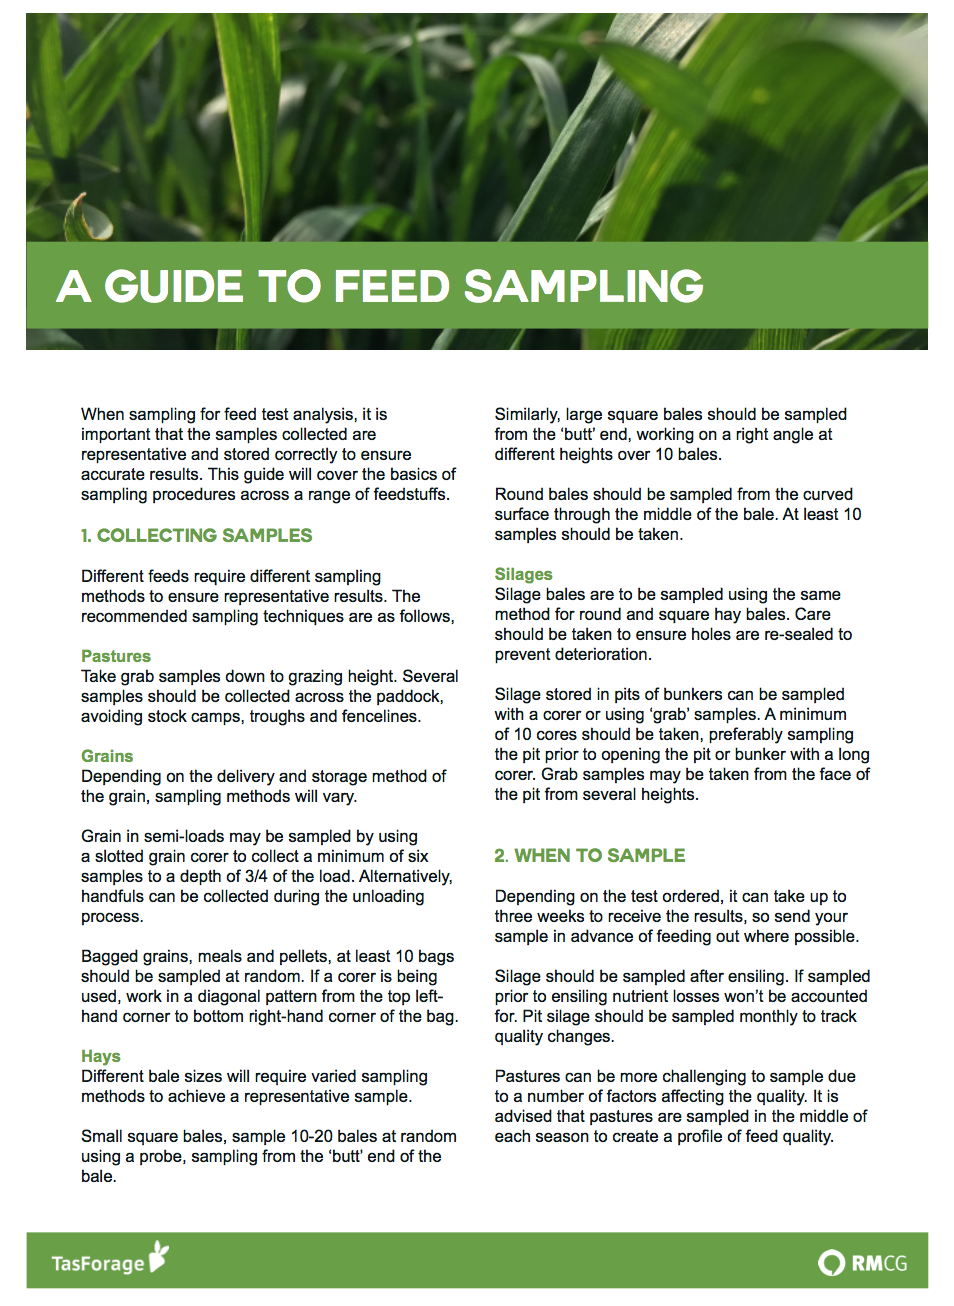 A Guide to Feed Sampling